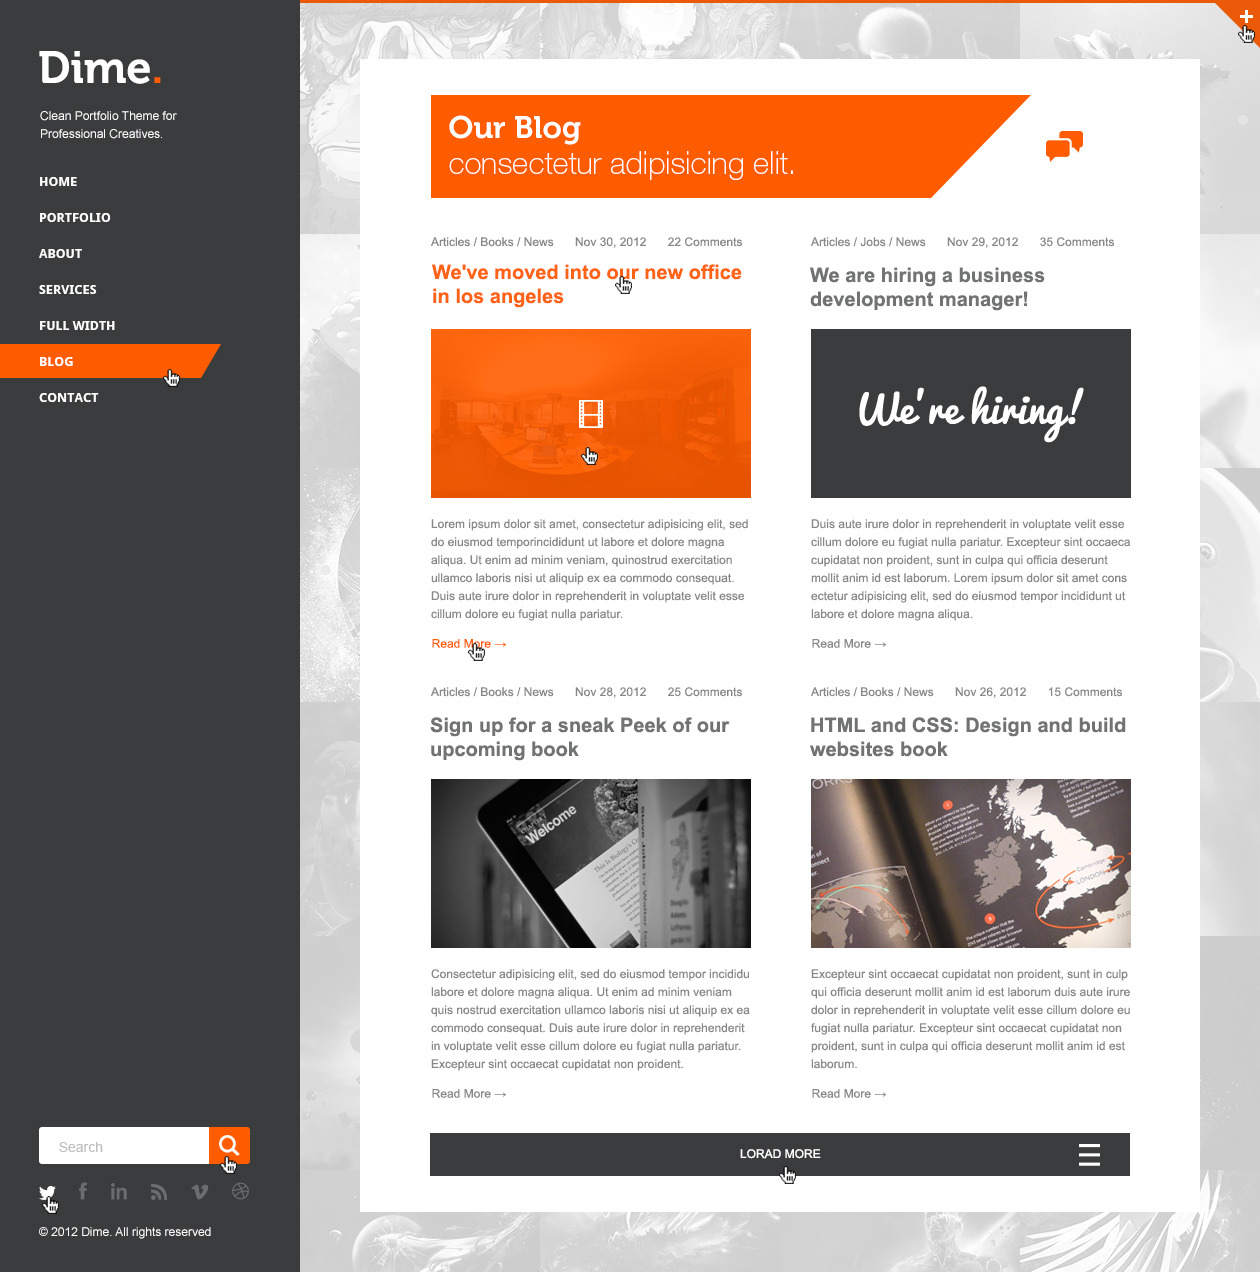 Dime - Agency / Business Portfolio PSD Template